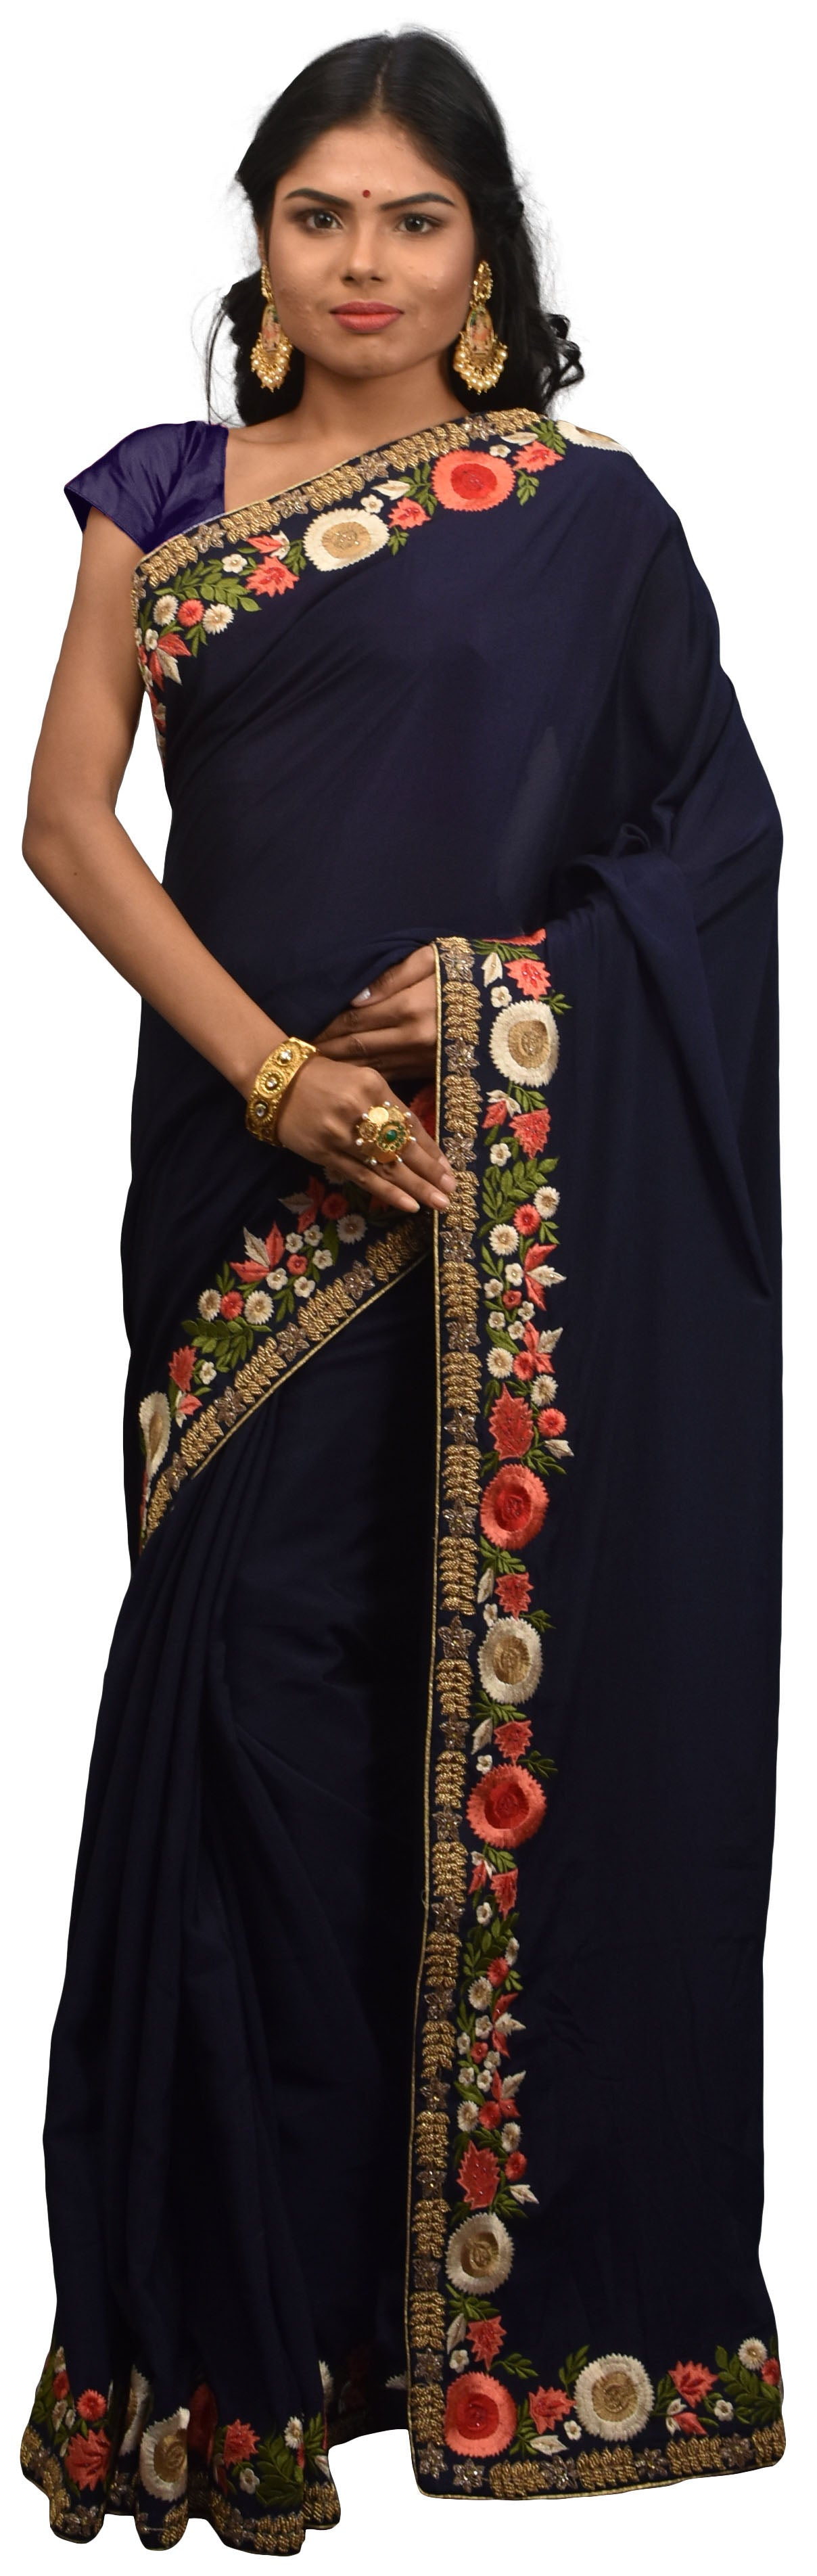 SMSAREE Navy Blue Designer Wedding Partywear Crepe (Chinon) Cutdana Stone Thread & Beads Hand Embroidery Work Bridal Saree Sari With Blouse Piece E591